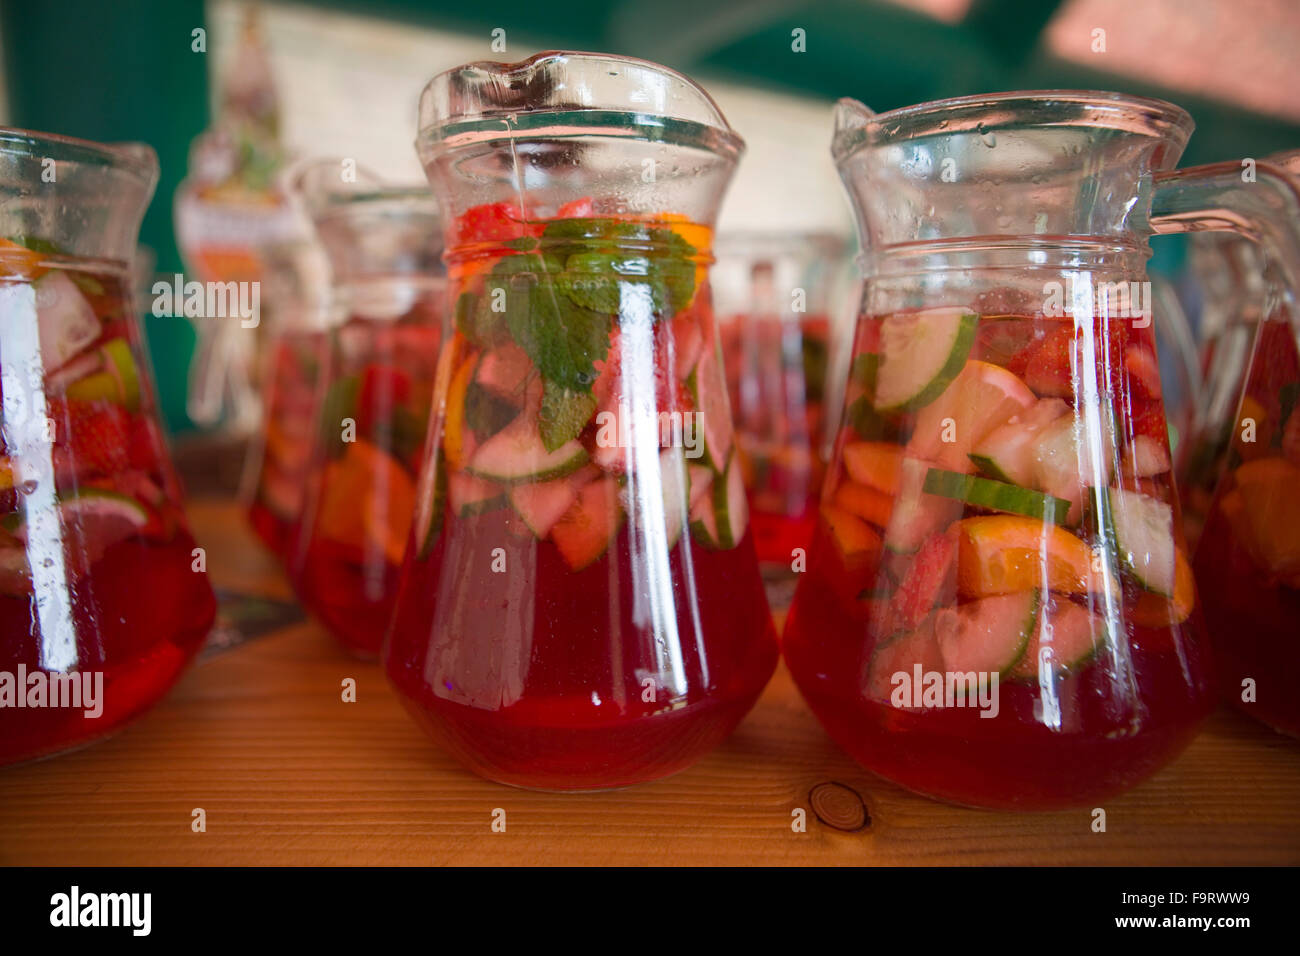 pimms and lemonade drink jug glass glasses refreshing fruit alcoholic drinks alcohol fresh mint gin based tall long Stock Photo